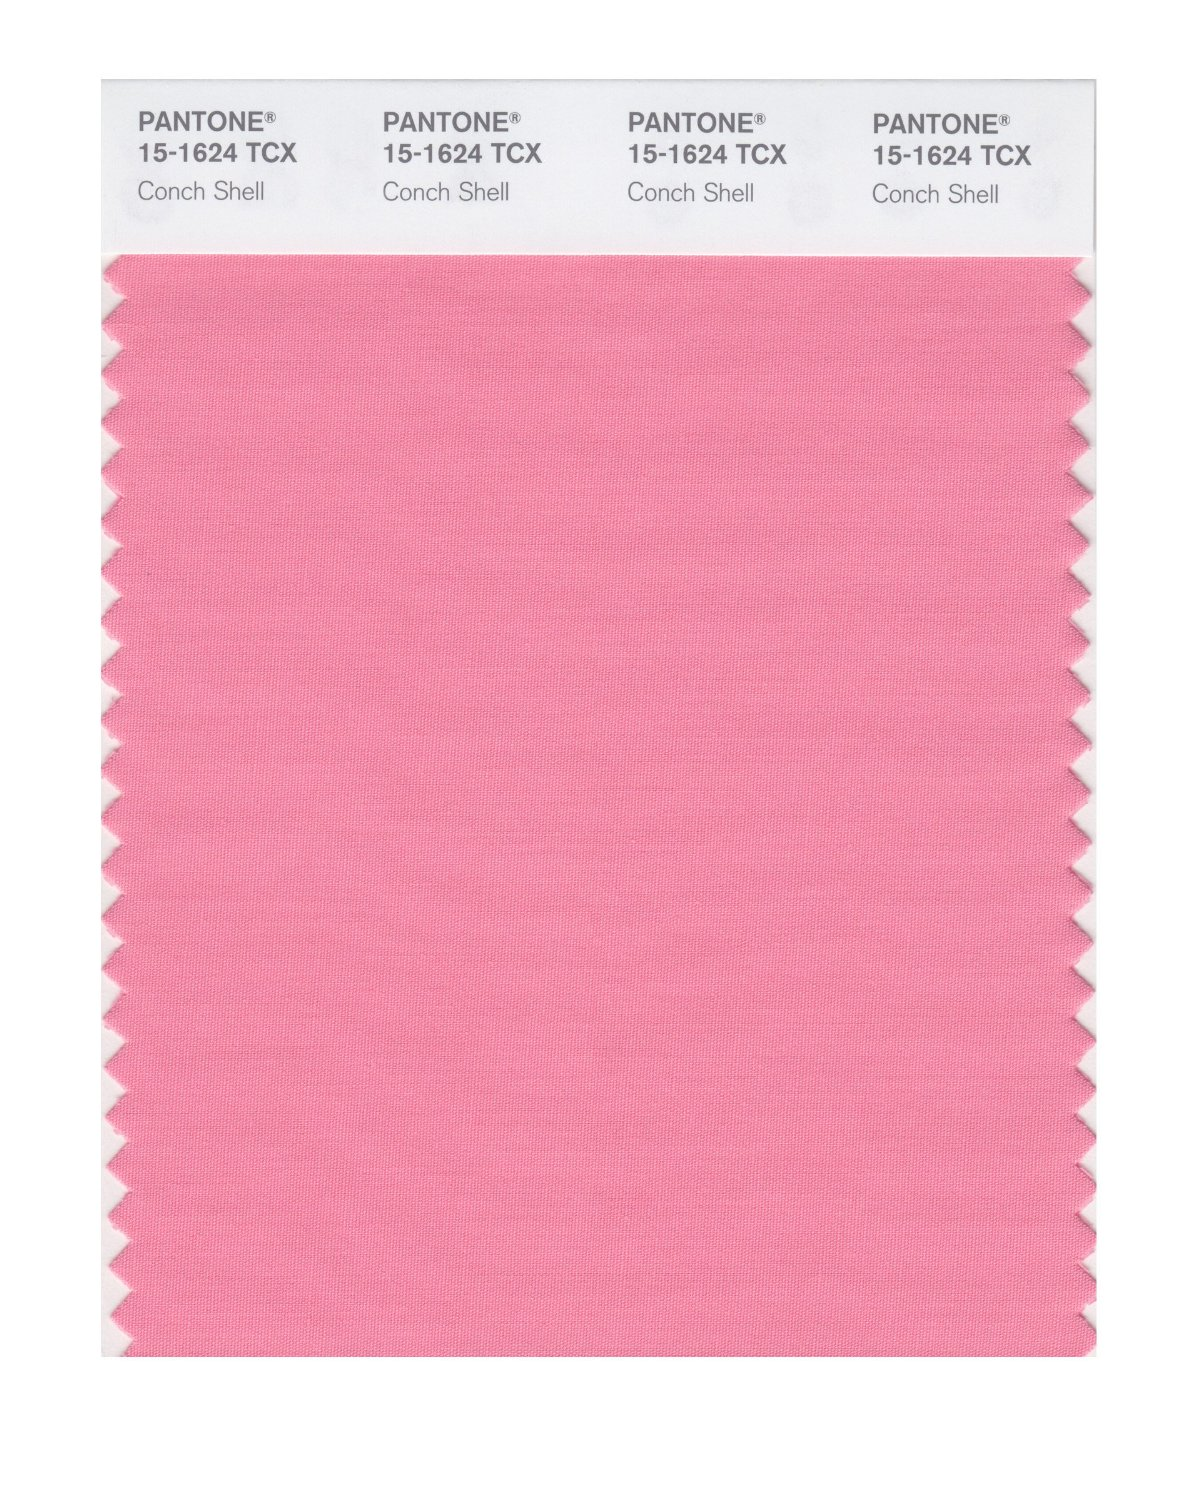 Pantone Smart Swatch 15-1624 Conch Shell